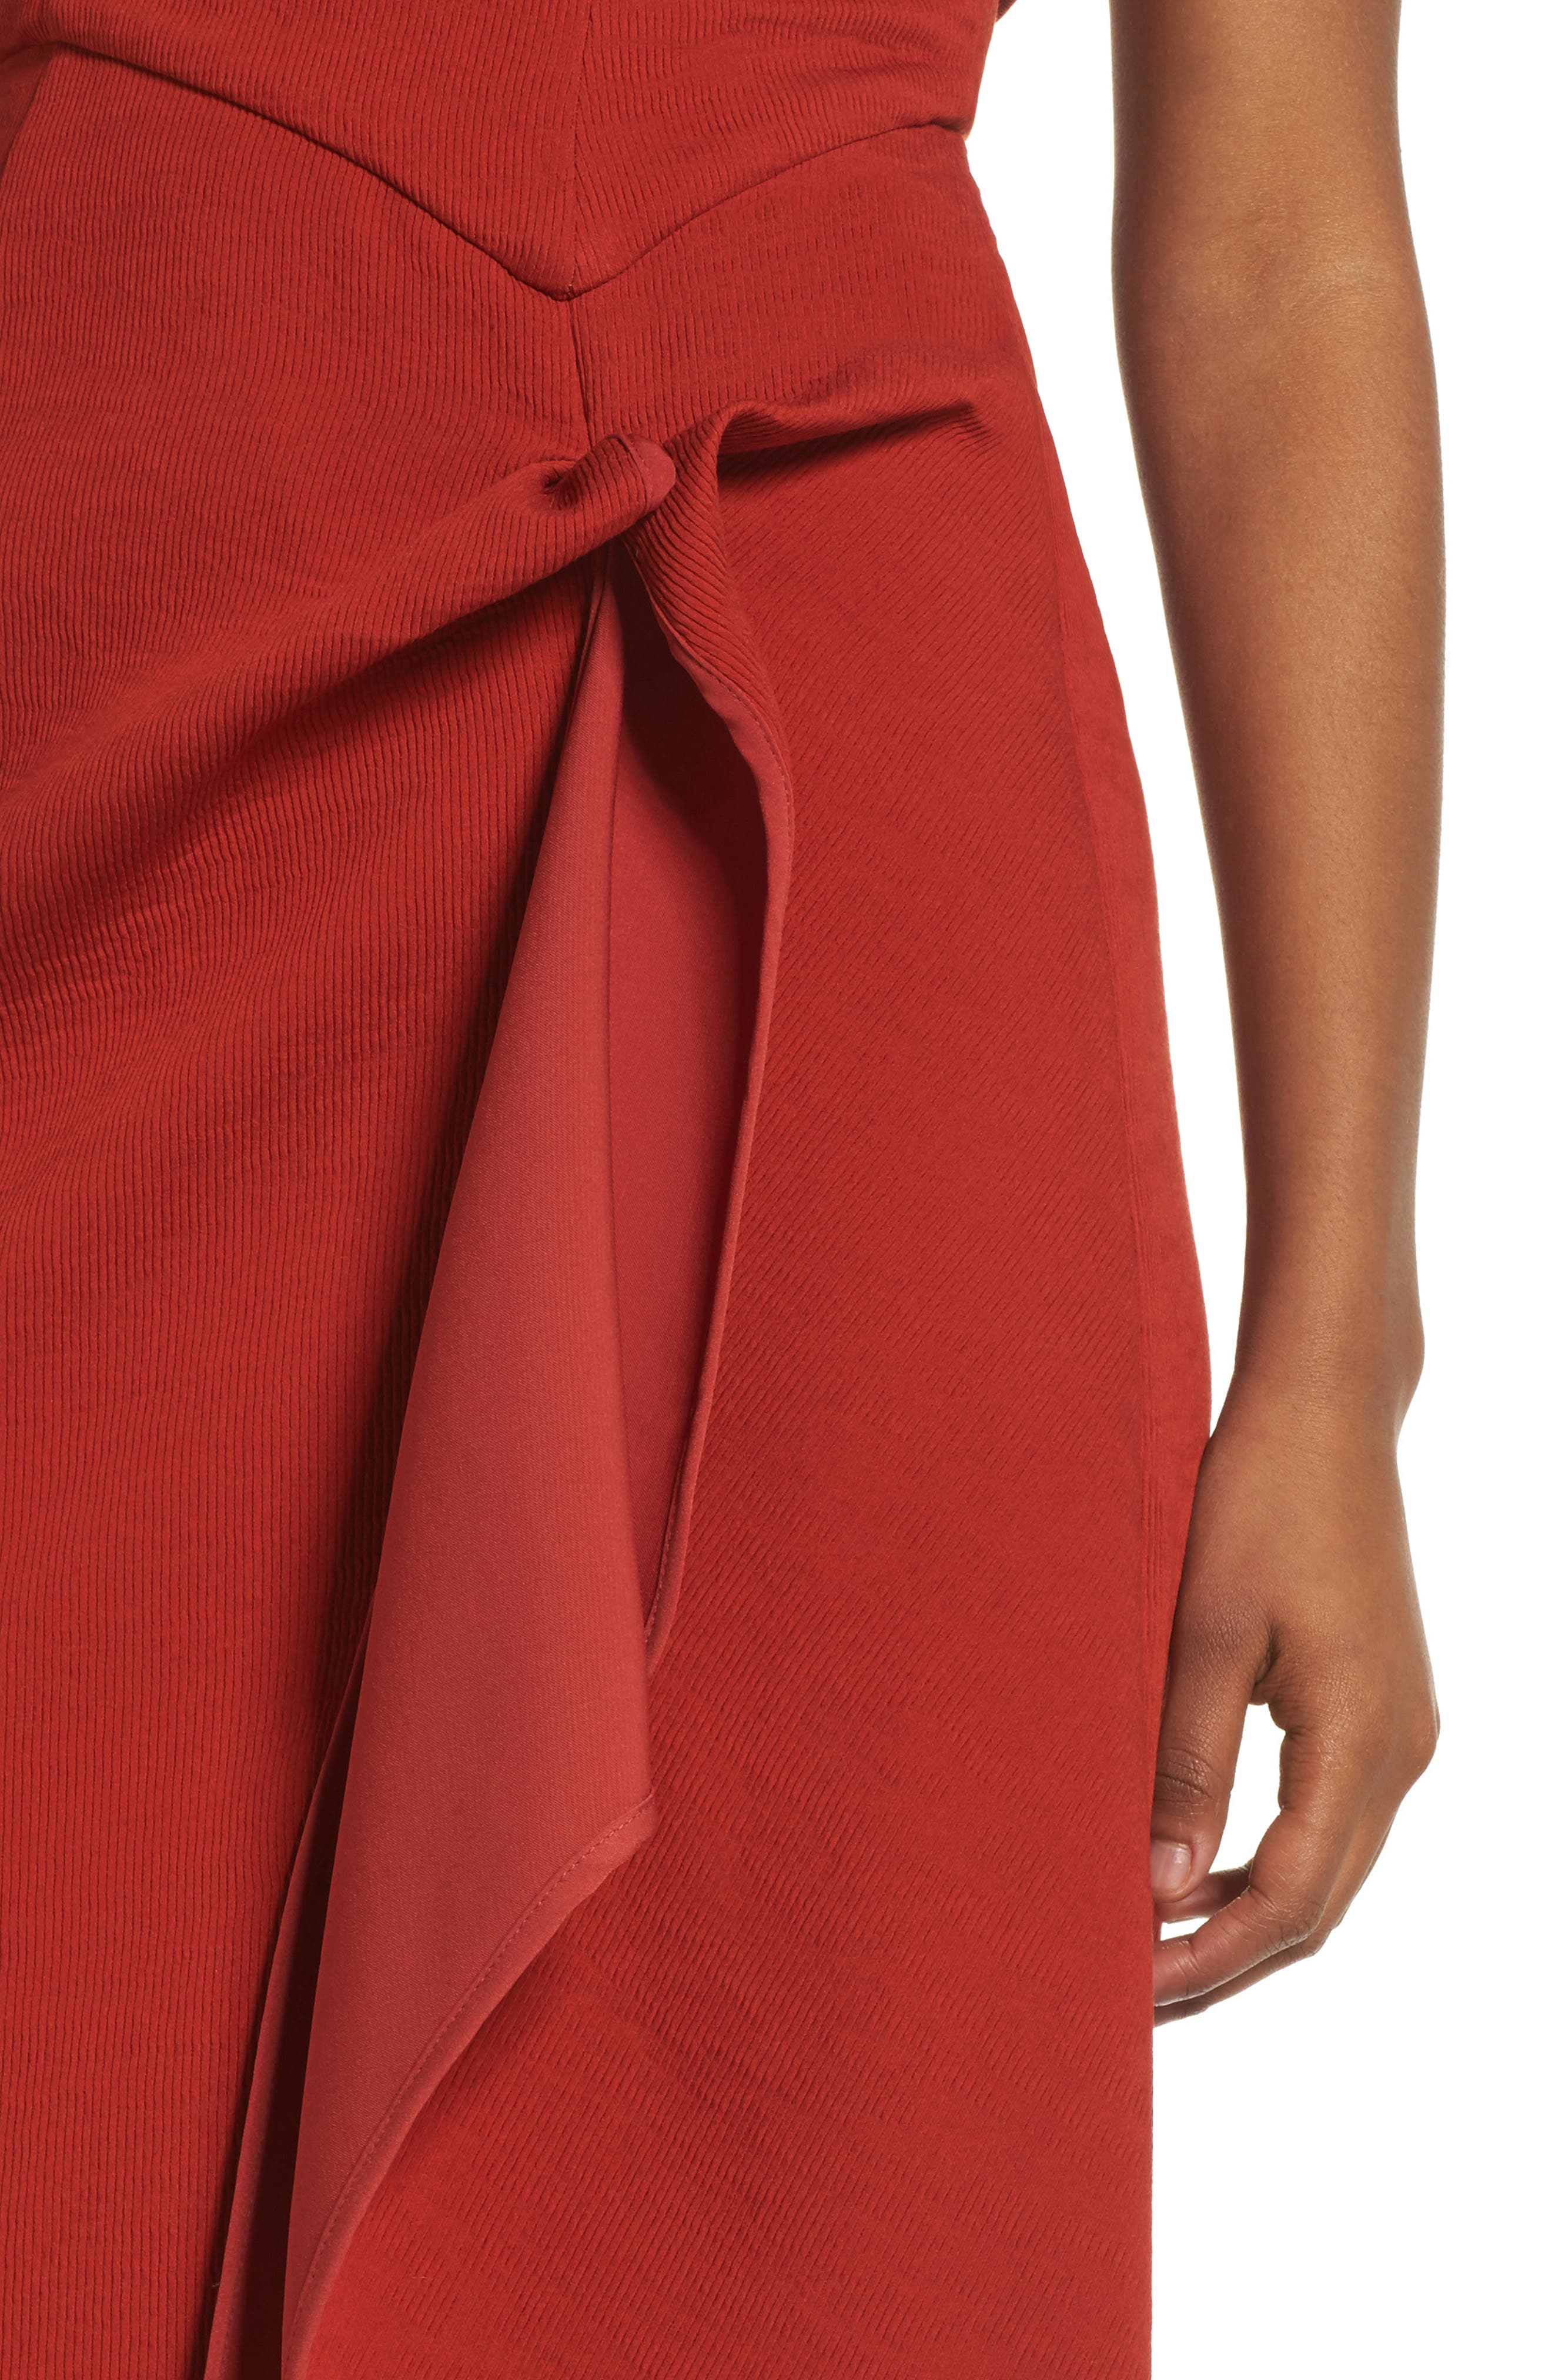 Fluidity Strapless Maxi Dress,                             Alternate thumbnail 5, color,                             Red